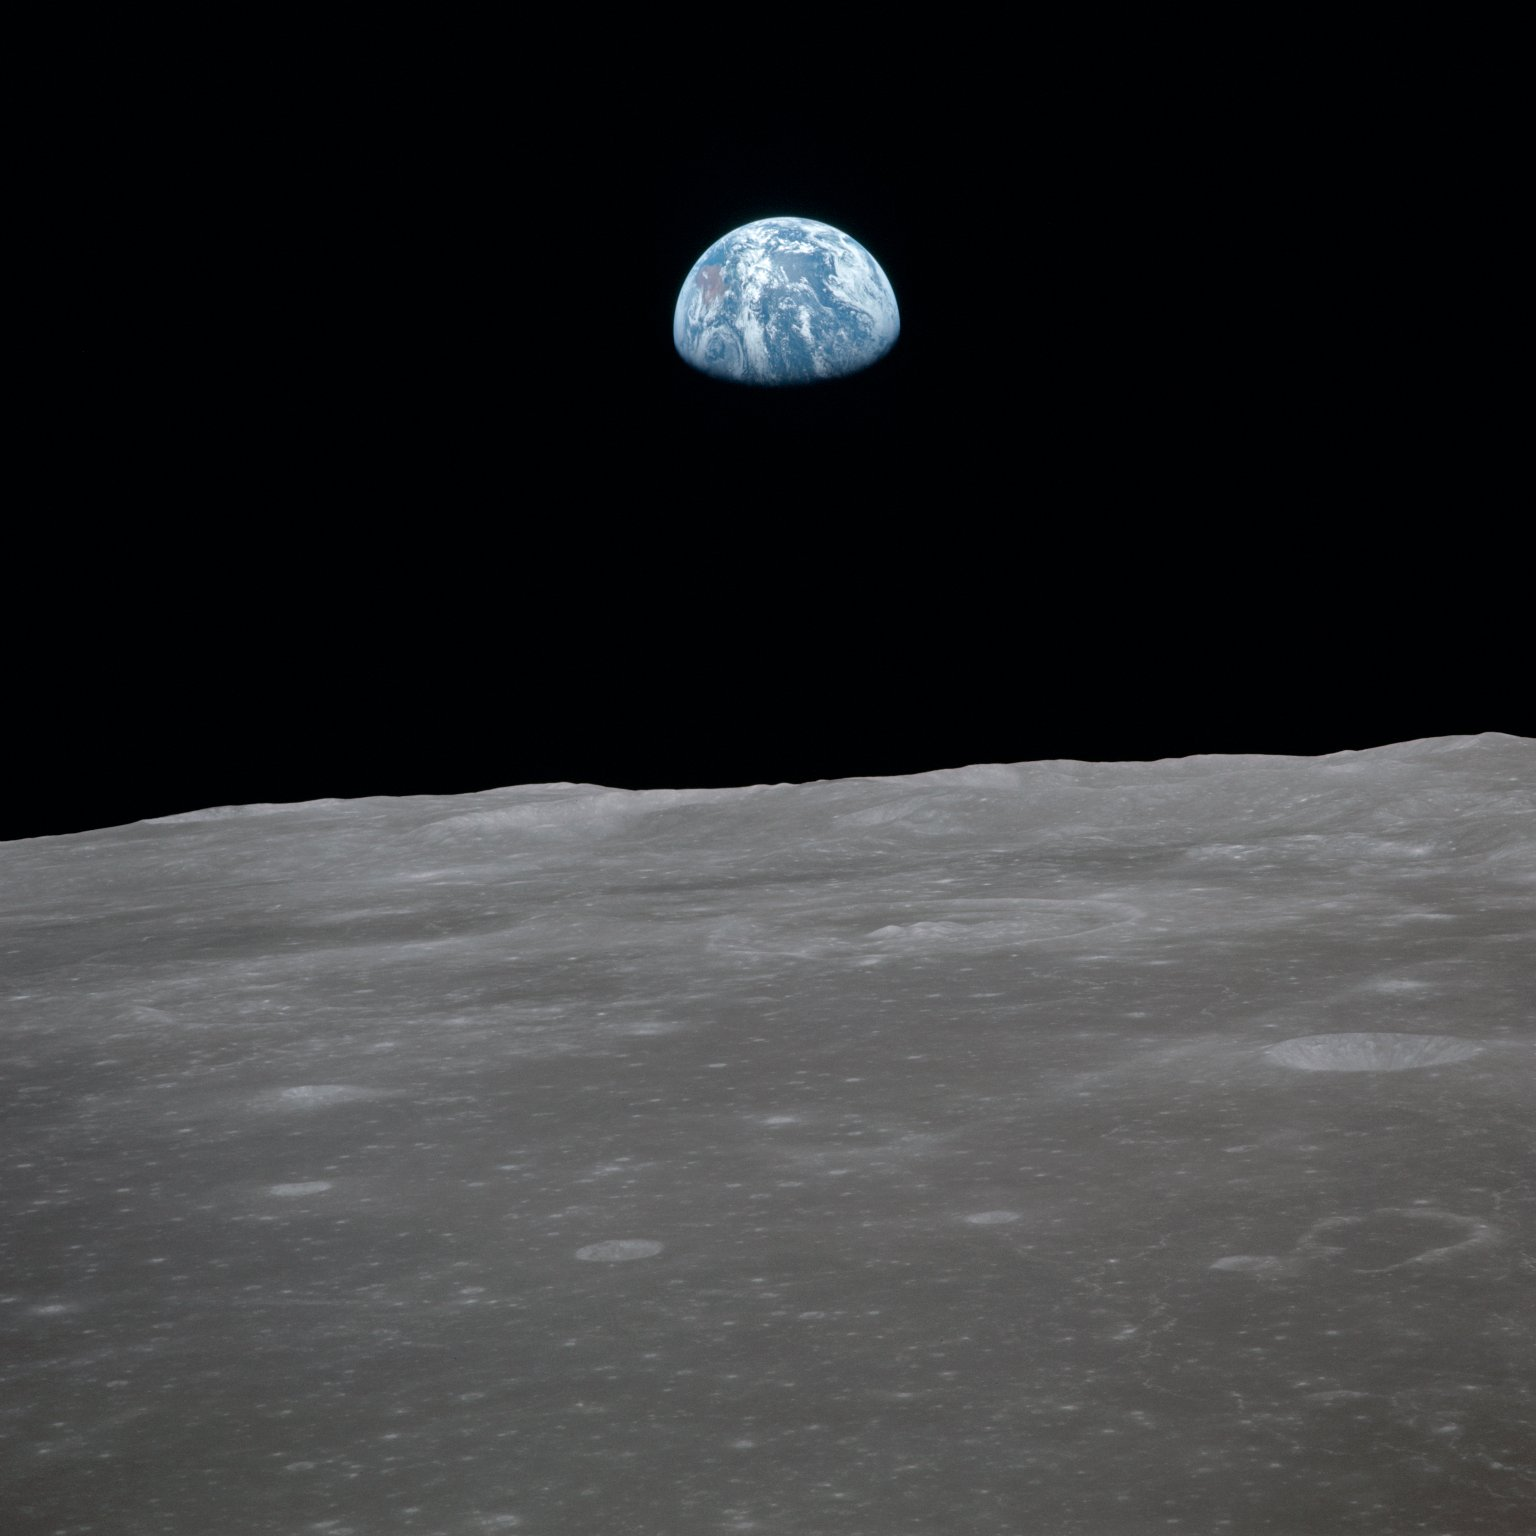 Apollo 11 Mission image - View of moon limb,with Earth on the horizon,Mare Smythii Region